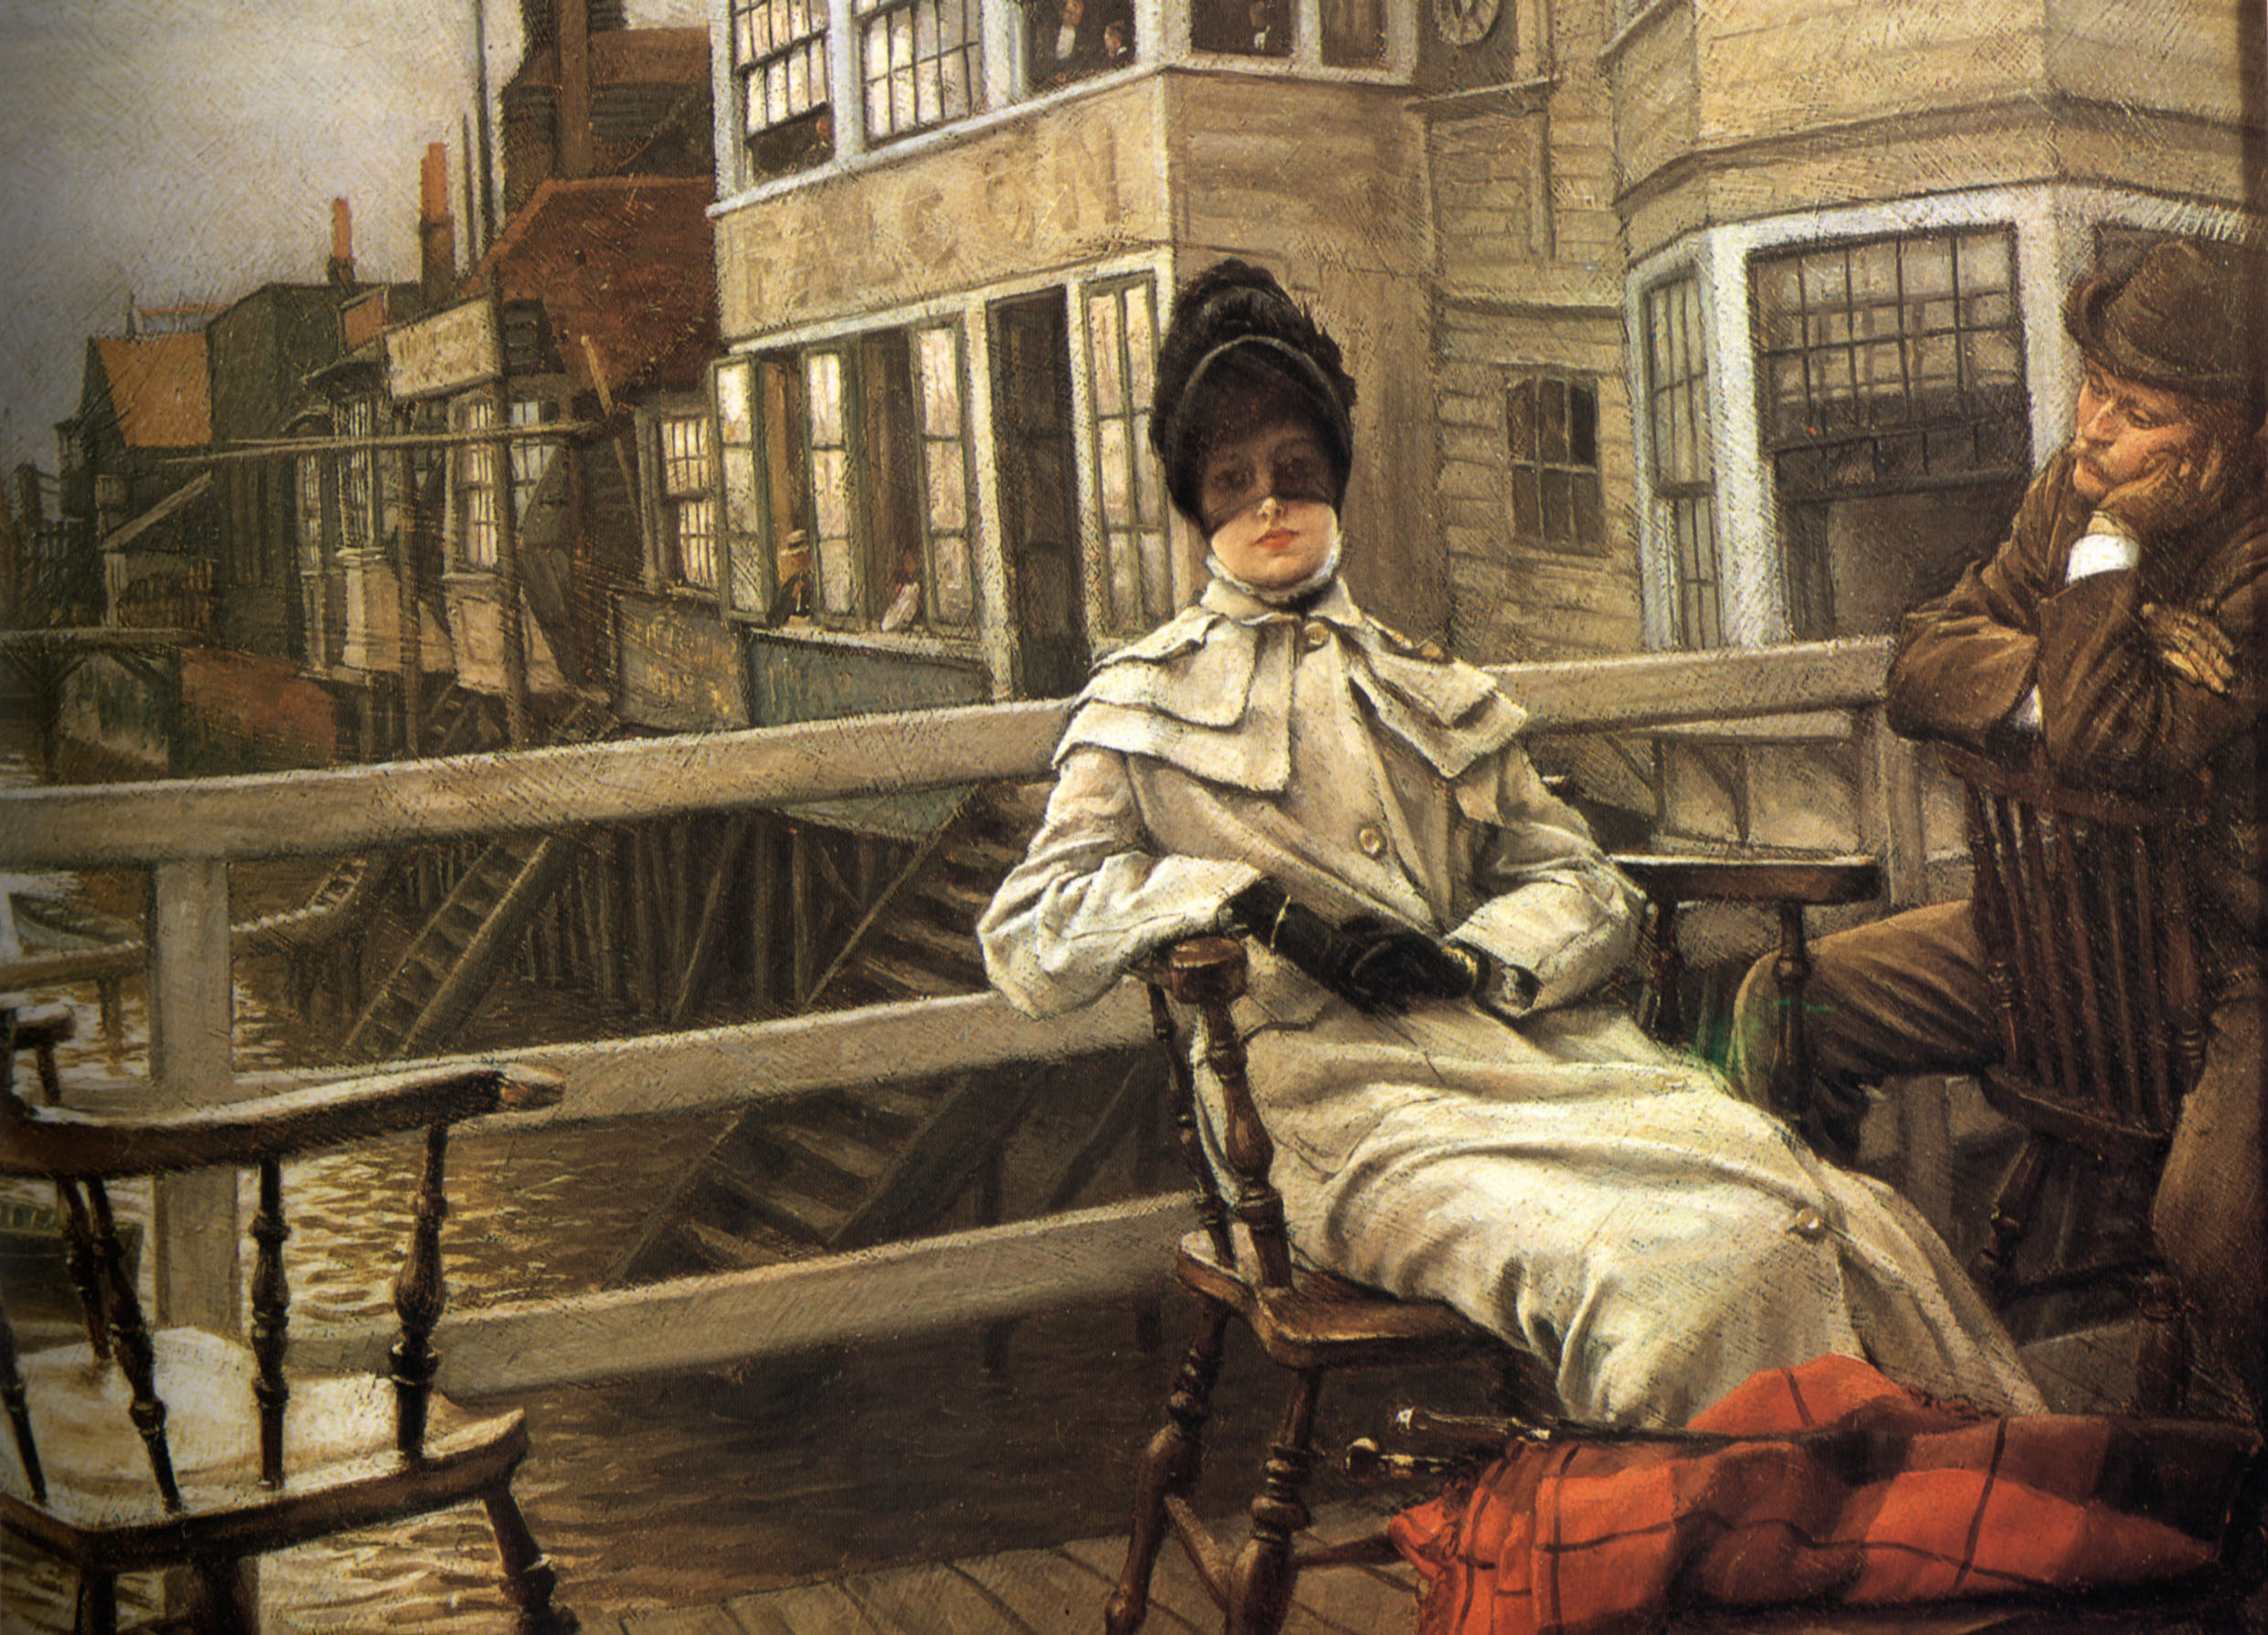 File:James Tissot - Waiting for the Ferry II.jpg - Wikimedia Commons